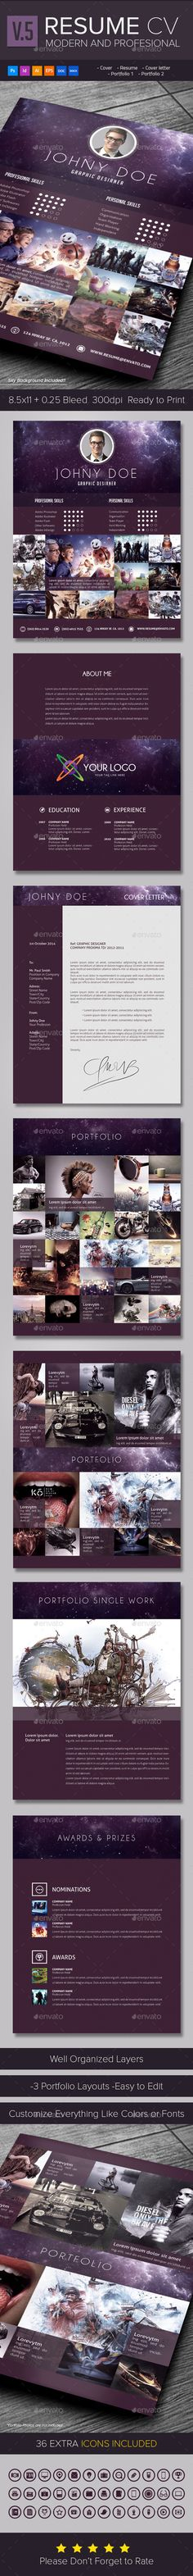 Art Director - Resume CV Portfolio Resume cv, Art director and - art director resume